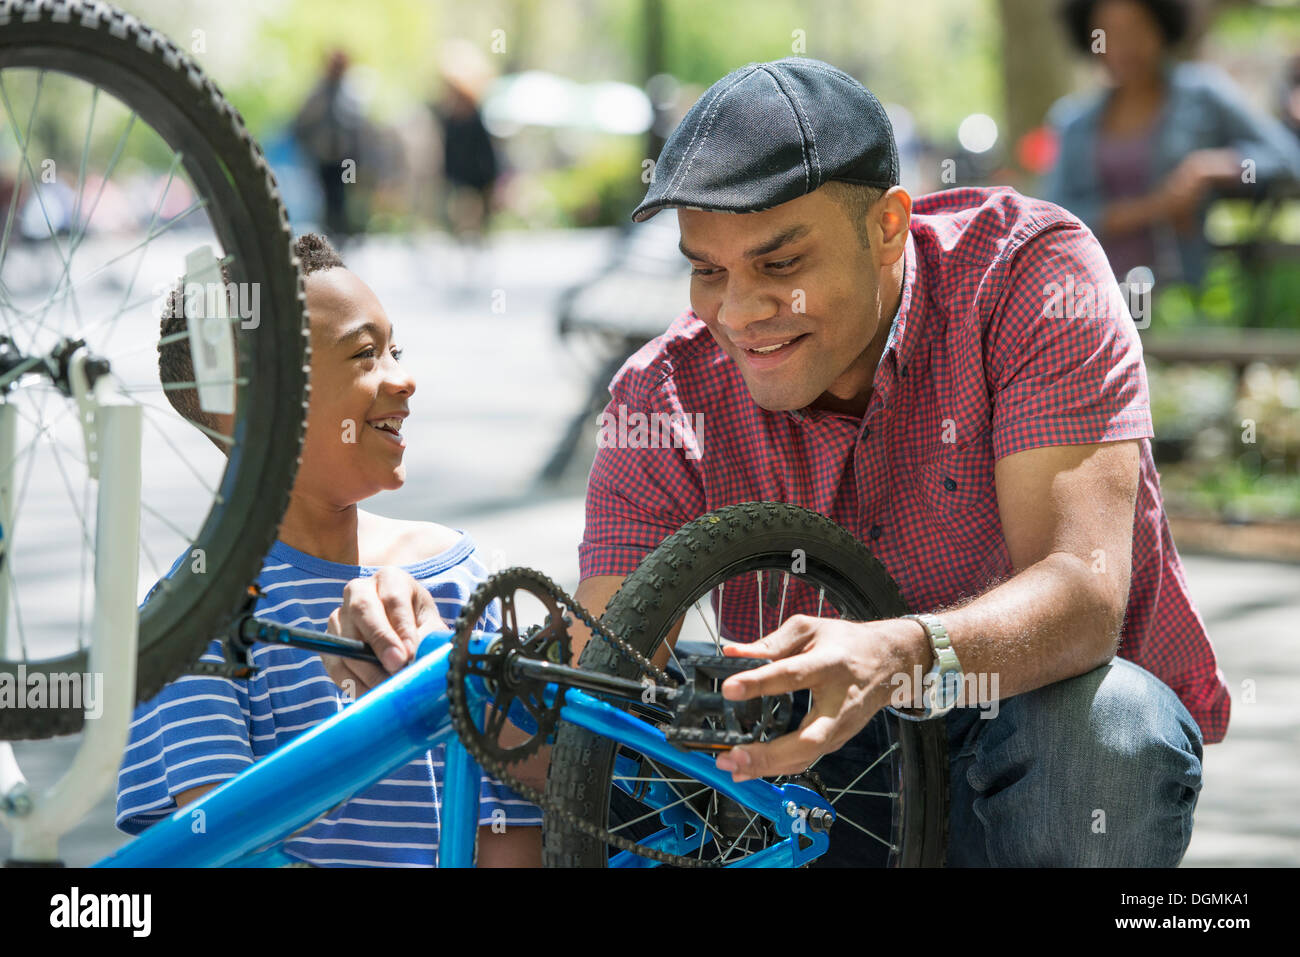 A family in the park on a sunny day. A father and son repairing a bicycle. - Stock Image